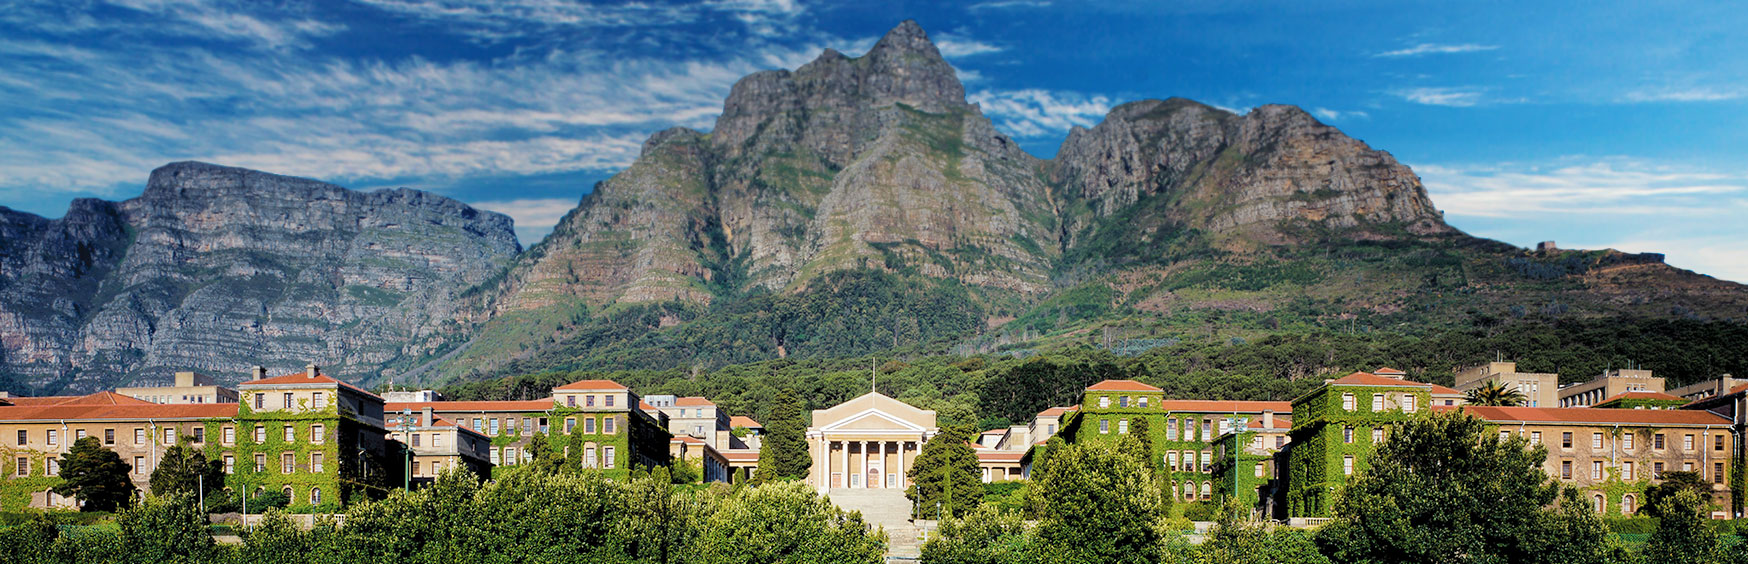 Panorama view of University of Cape Town, Upper Campus